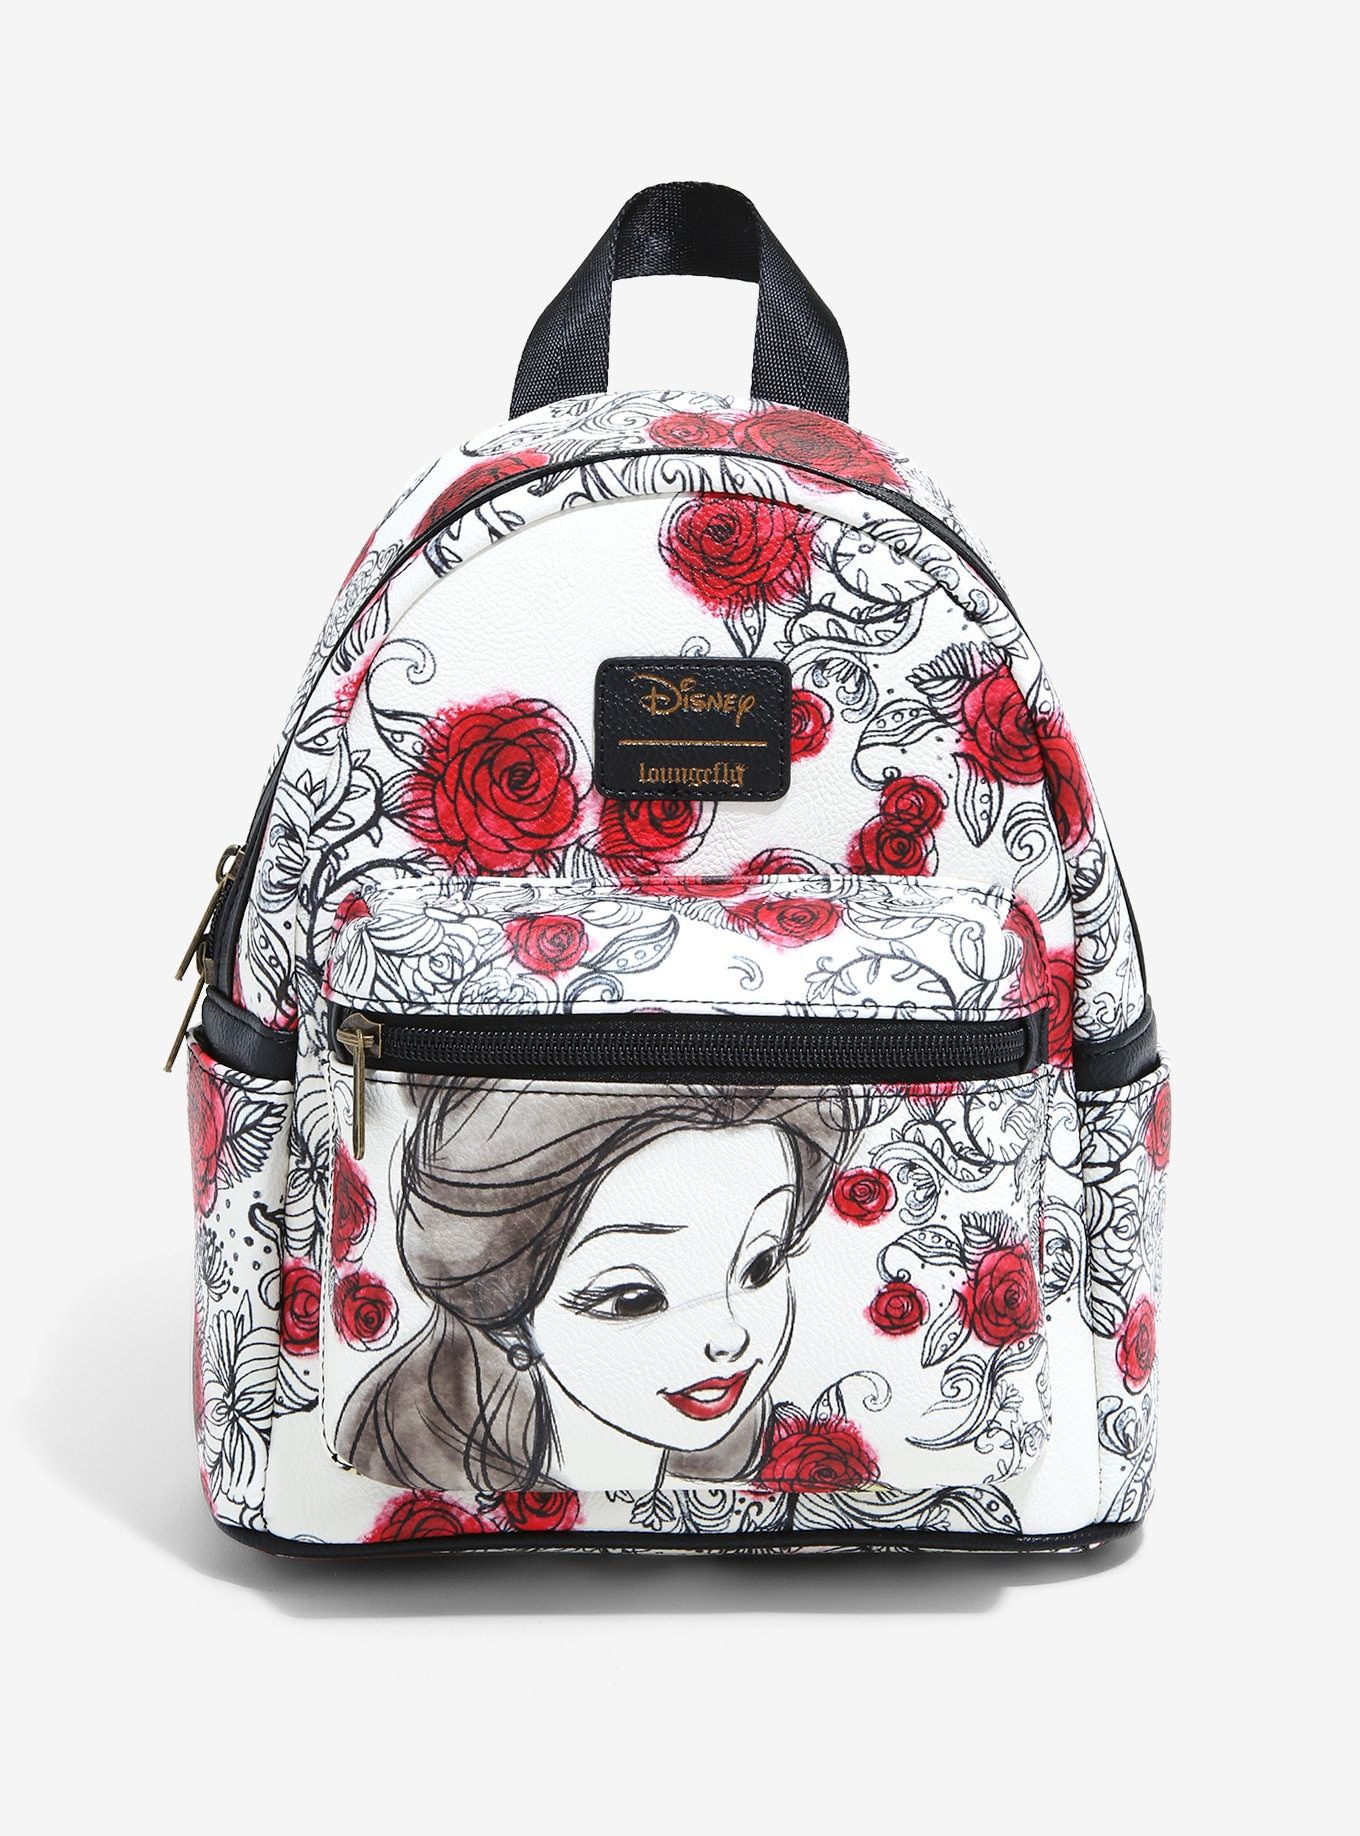 Loungefly disney beauty and the beast sketched roses mini